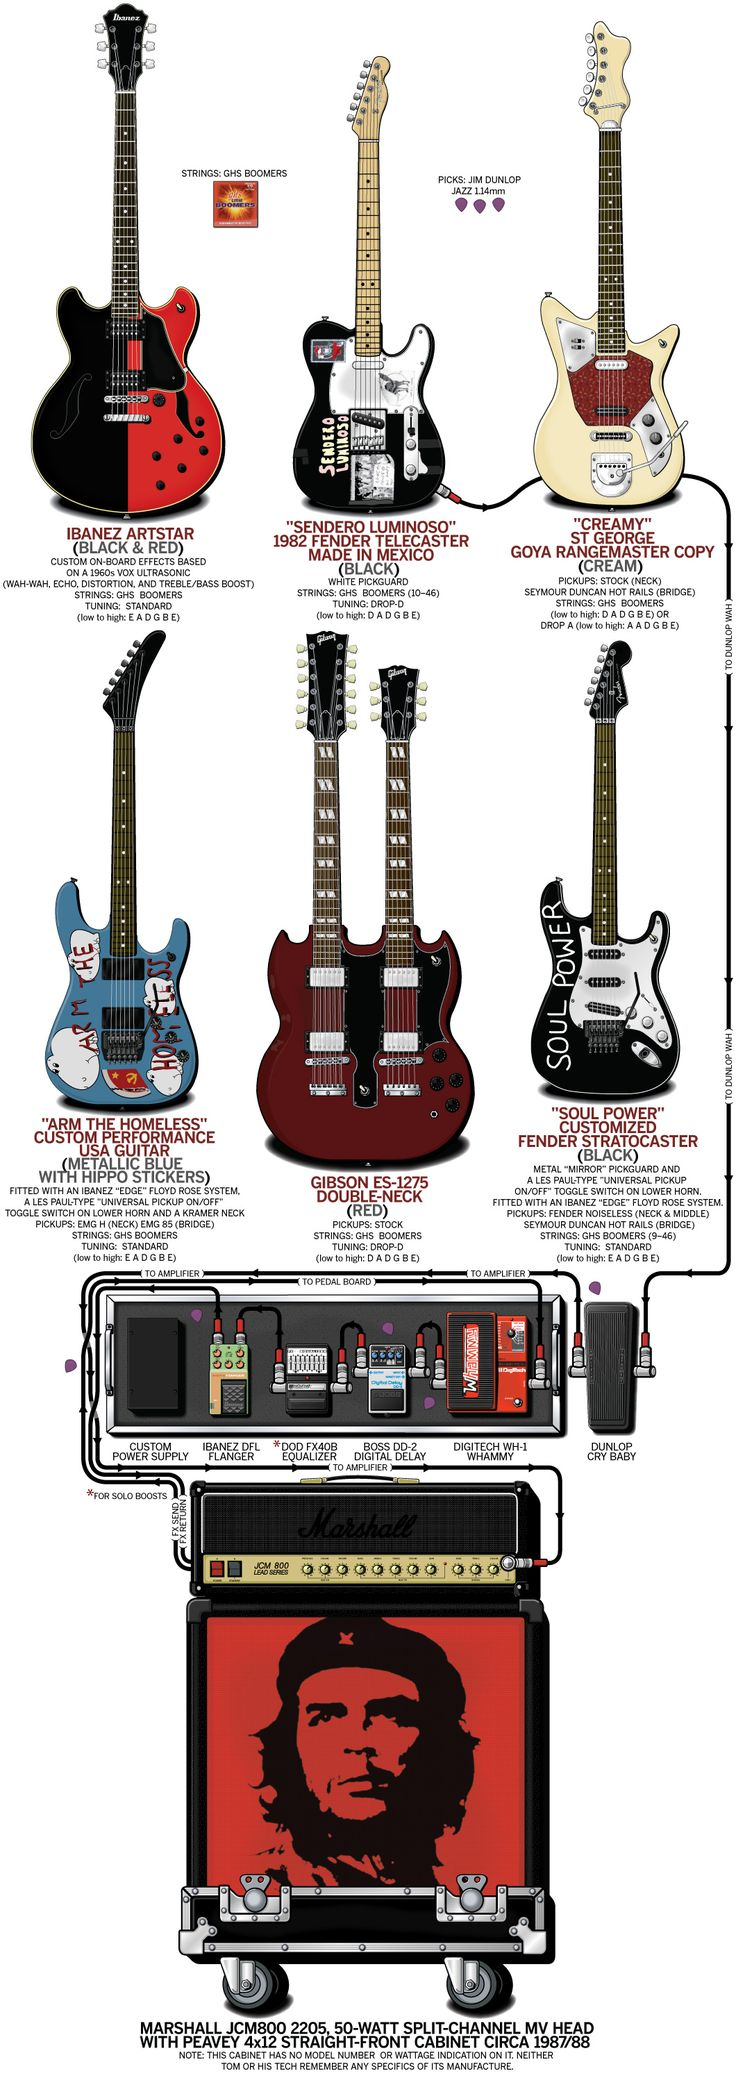 A detailed gear diagram of Tom Morello's 1998 Rage Against The Machine stage setup that traces the signal flow of the equipment in his guitar rig.